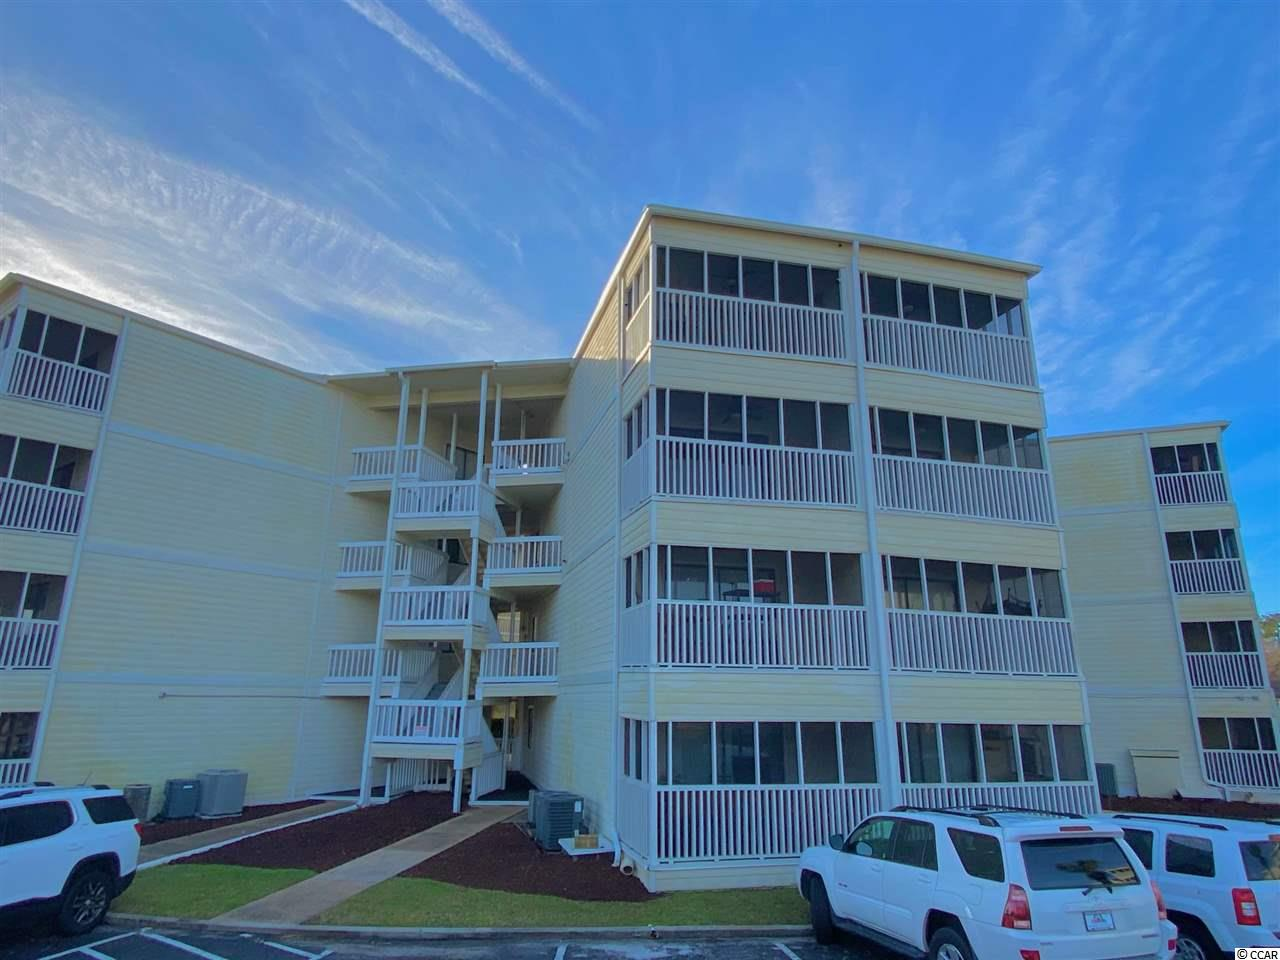 This beautiful, newly renovated 1 bedroom 1.5 bath overlooking the large private pool comes fully furnished and move in ready! This cozy condo is freshly painted with brand new floors, updated appliances, new light and plumbing fixtures, and has access to an elevator. It is located in an Intracoastal Waterway community conveniently located close to shopping areas, local restaurants, healthcare, and the Beach! You can walk right over to your boat at the Marina on the Intracoastal Waterway next door and walk over to enjoy a delicious meal while watching the sunset at the waterfront restaurant! Schedule a virtual or an in-person showing before this one is gone!